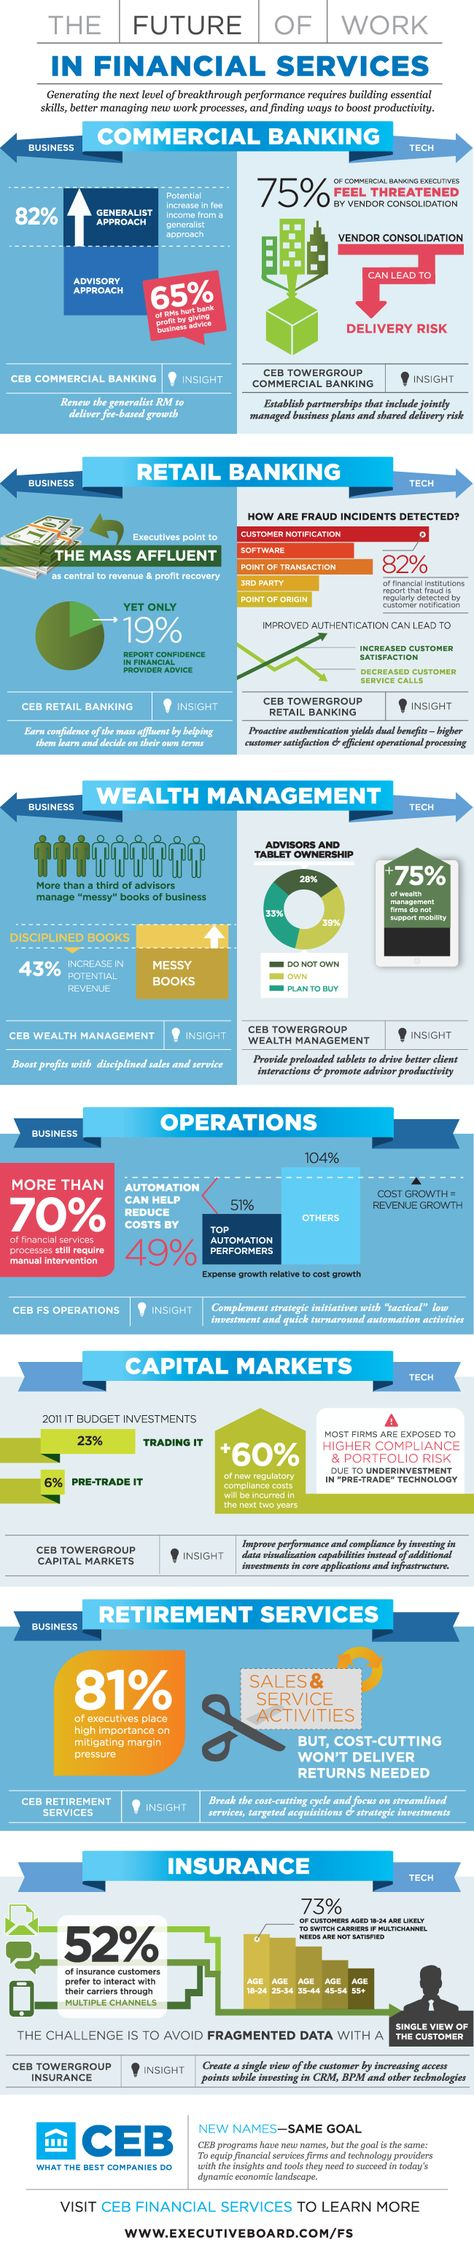 The Future Of Work In Financial Services #infographic